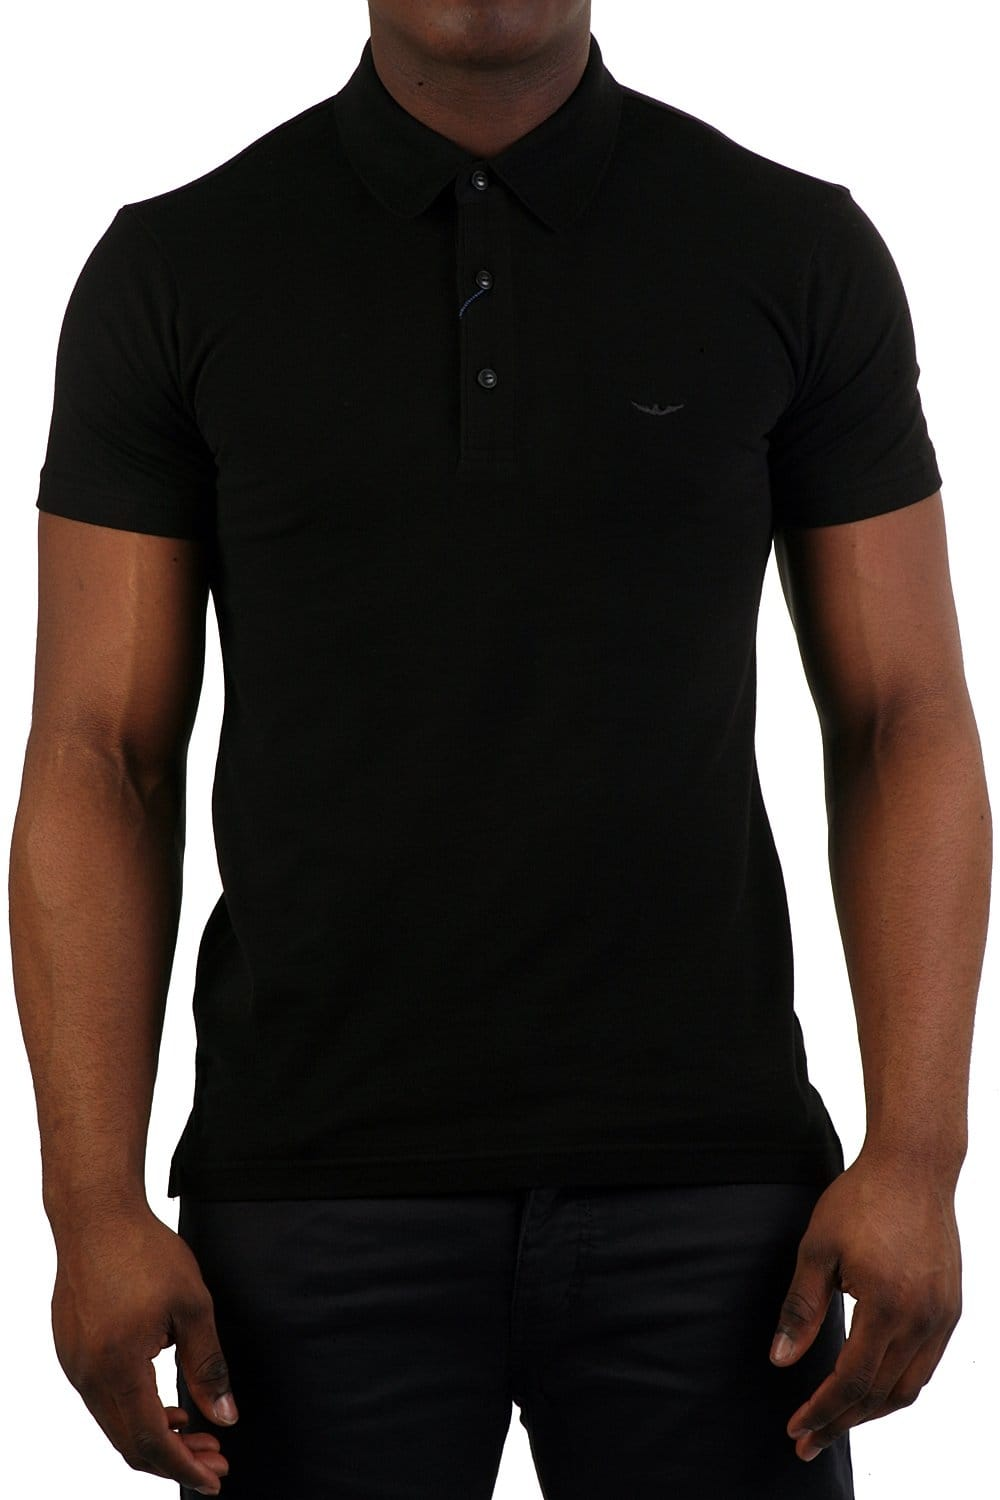 Black t shirt armani - Armani Jeans Slim Fit Polo T Shirt In Black S6m65qu 12